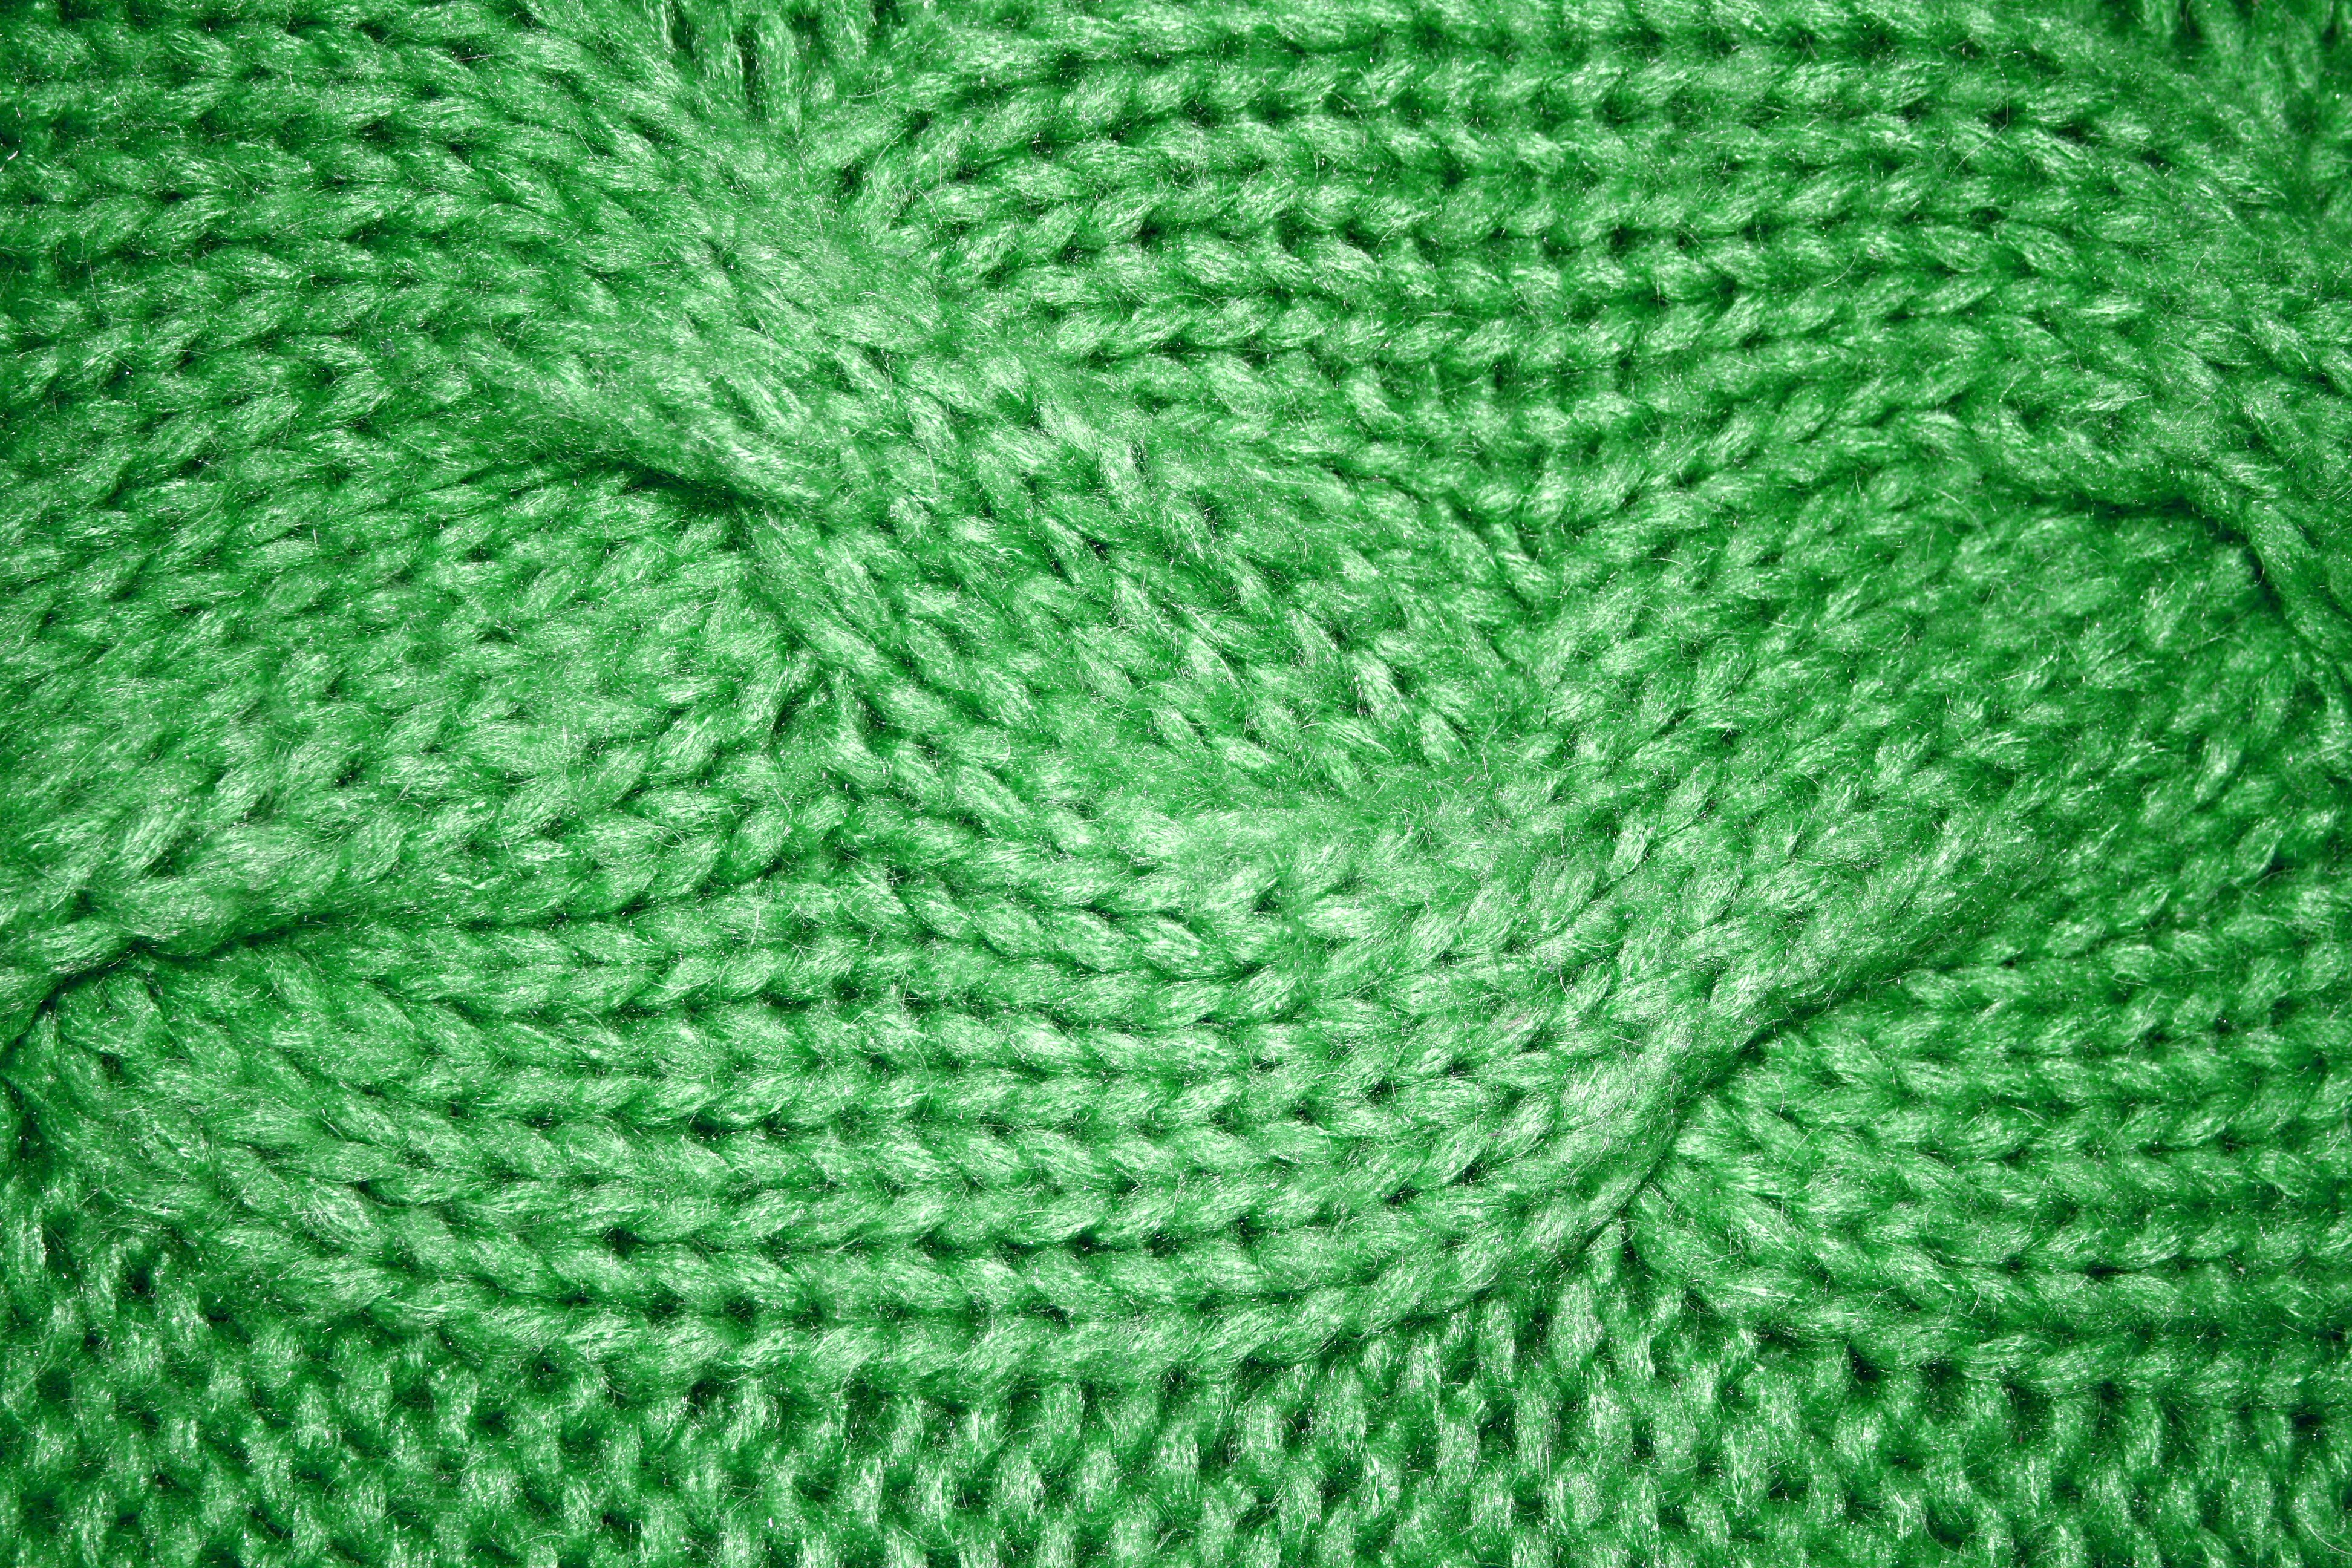 Knitting Images Hd : Green cable knit pattern texture picture free photograph